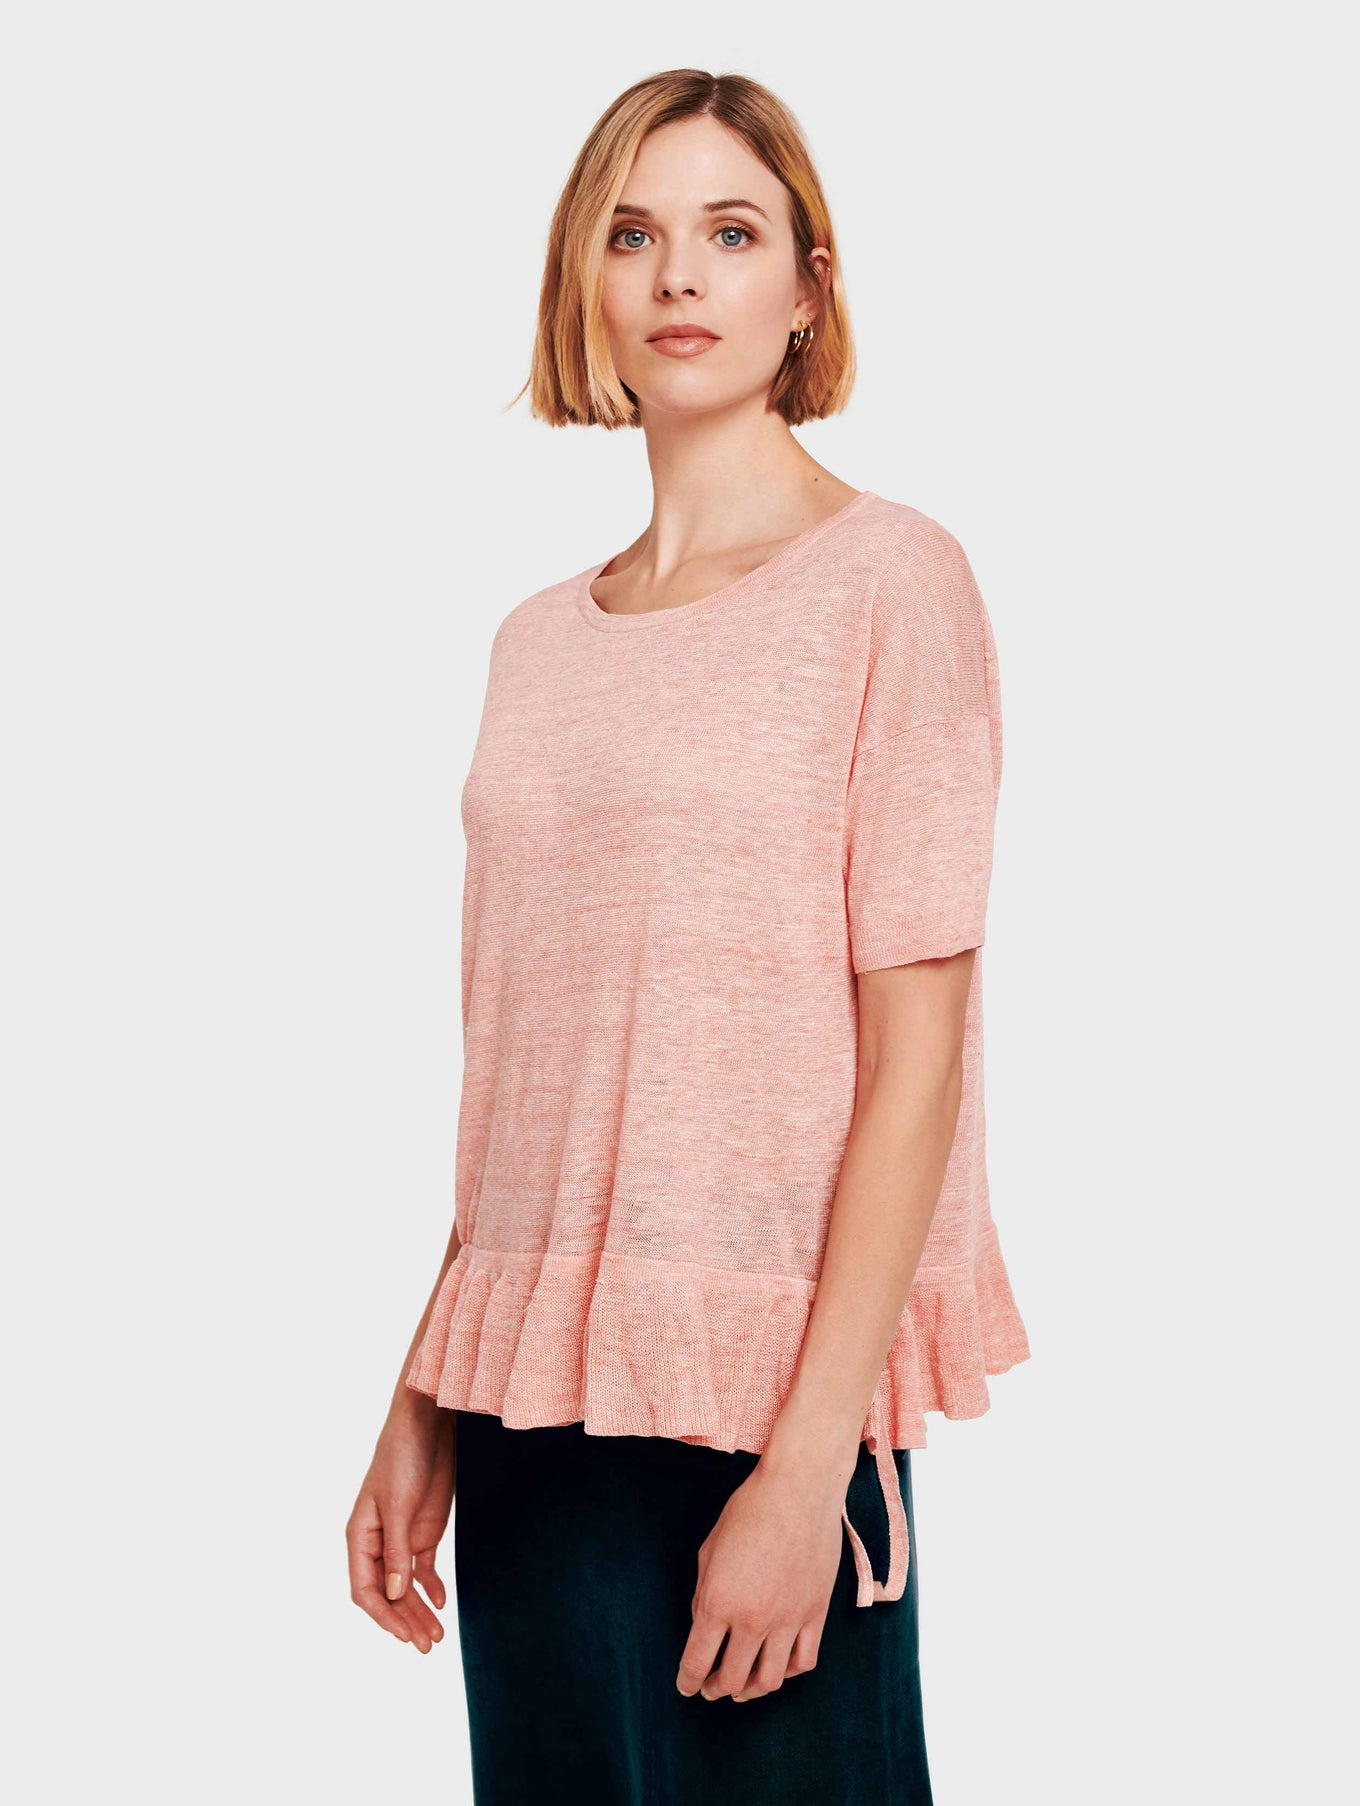 Linen Drawcord Ruffle Tee - Sorbet Heather - Image 2